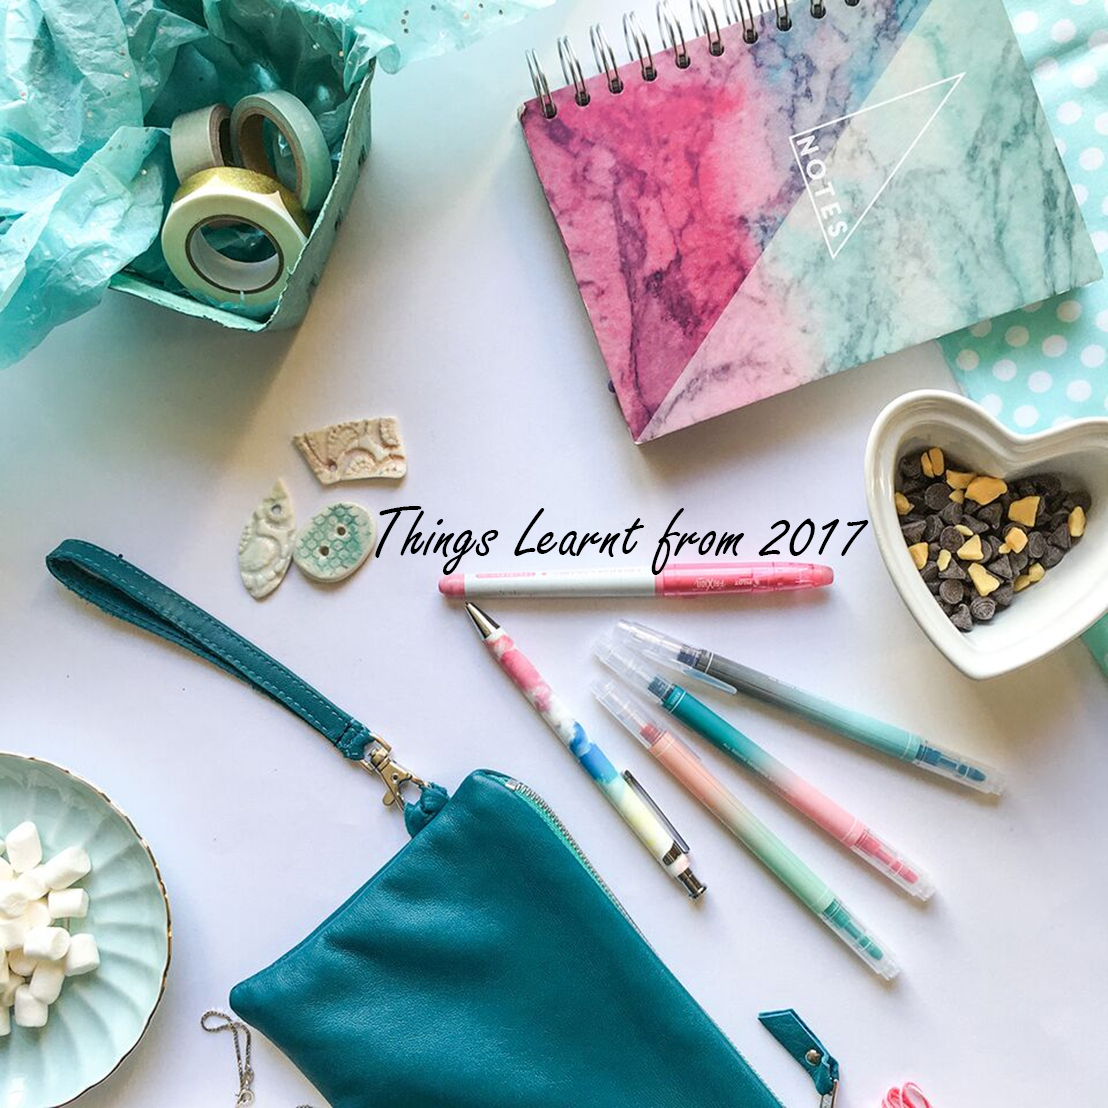 Things learnt from 2017